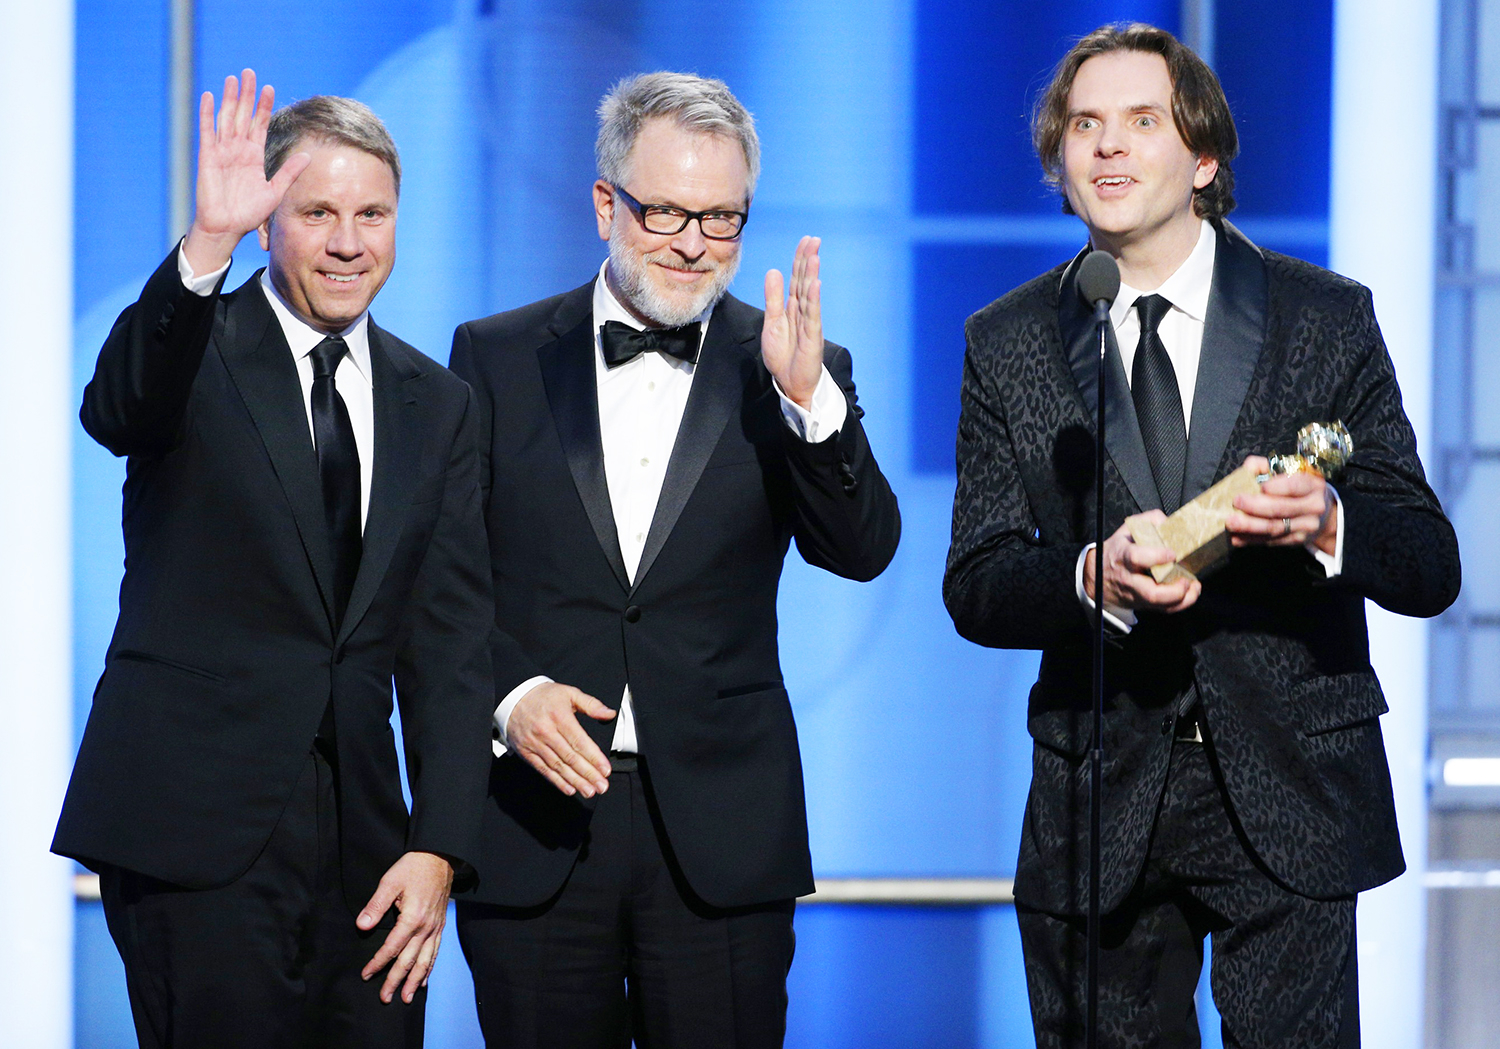 Clark Spencer and directors Rich Moore and Byron Howard accept the award for Best Motion Picture - Animated for